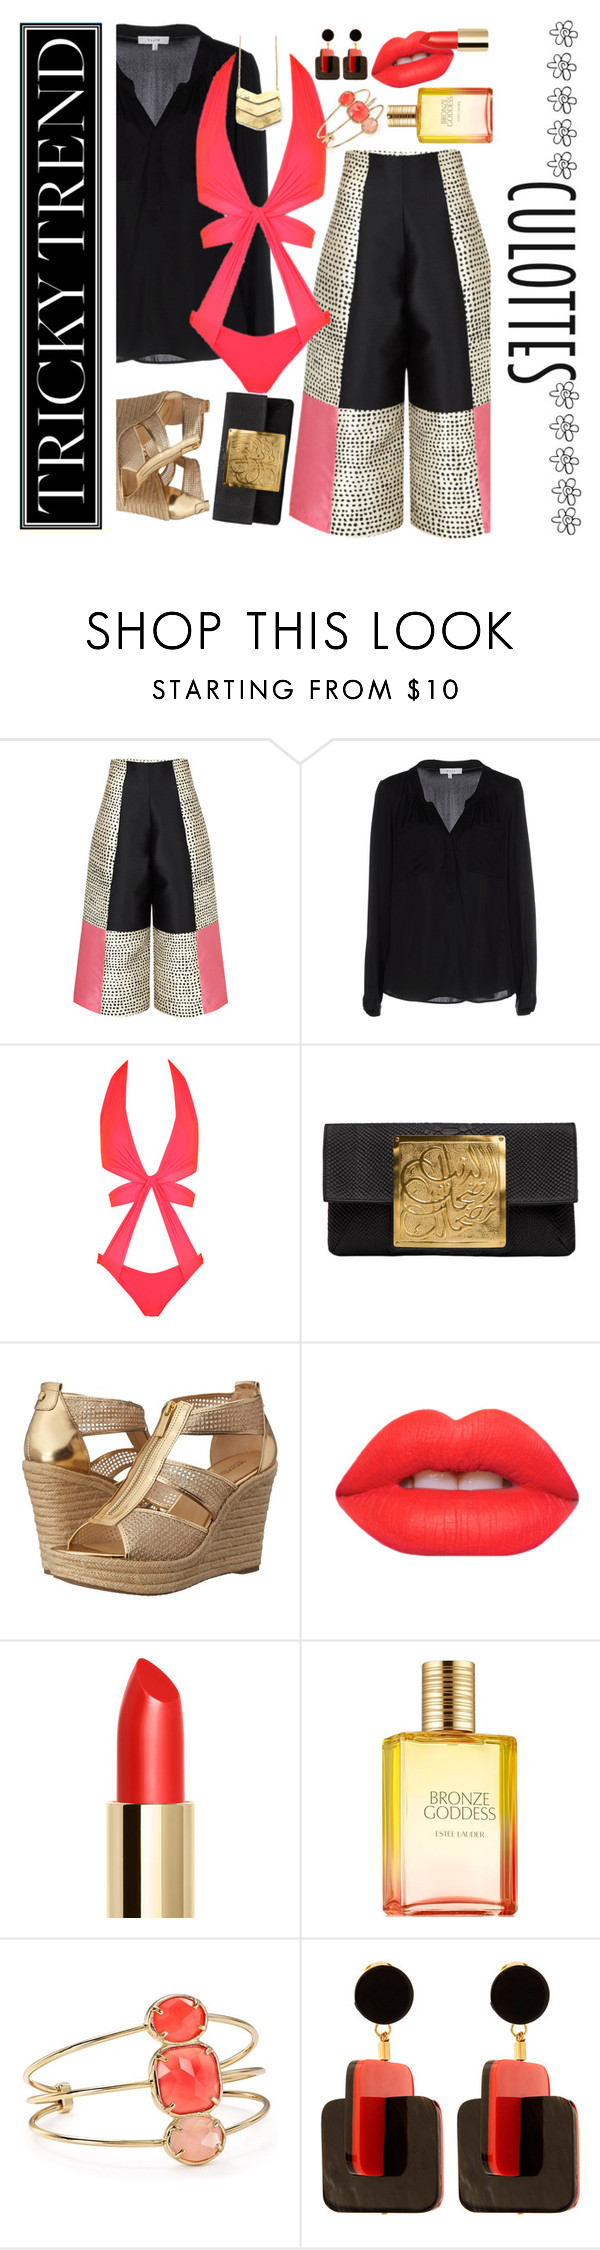 """""""Cool Culottes"""" by petalp ❤ liked on Polyvore featuring Paper London, Milly, Agent Provocateur, Dareen Hakim, MICHAEL Michael Kors, Lime Crime, Kate Spade, Marni, TrickyTrend and culottes"""